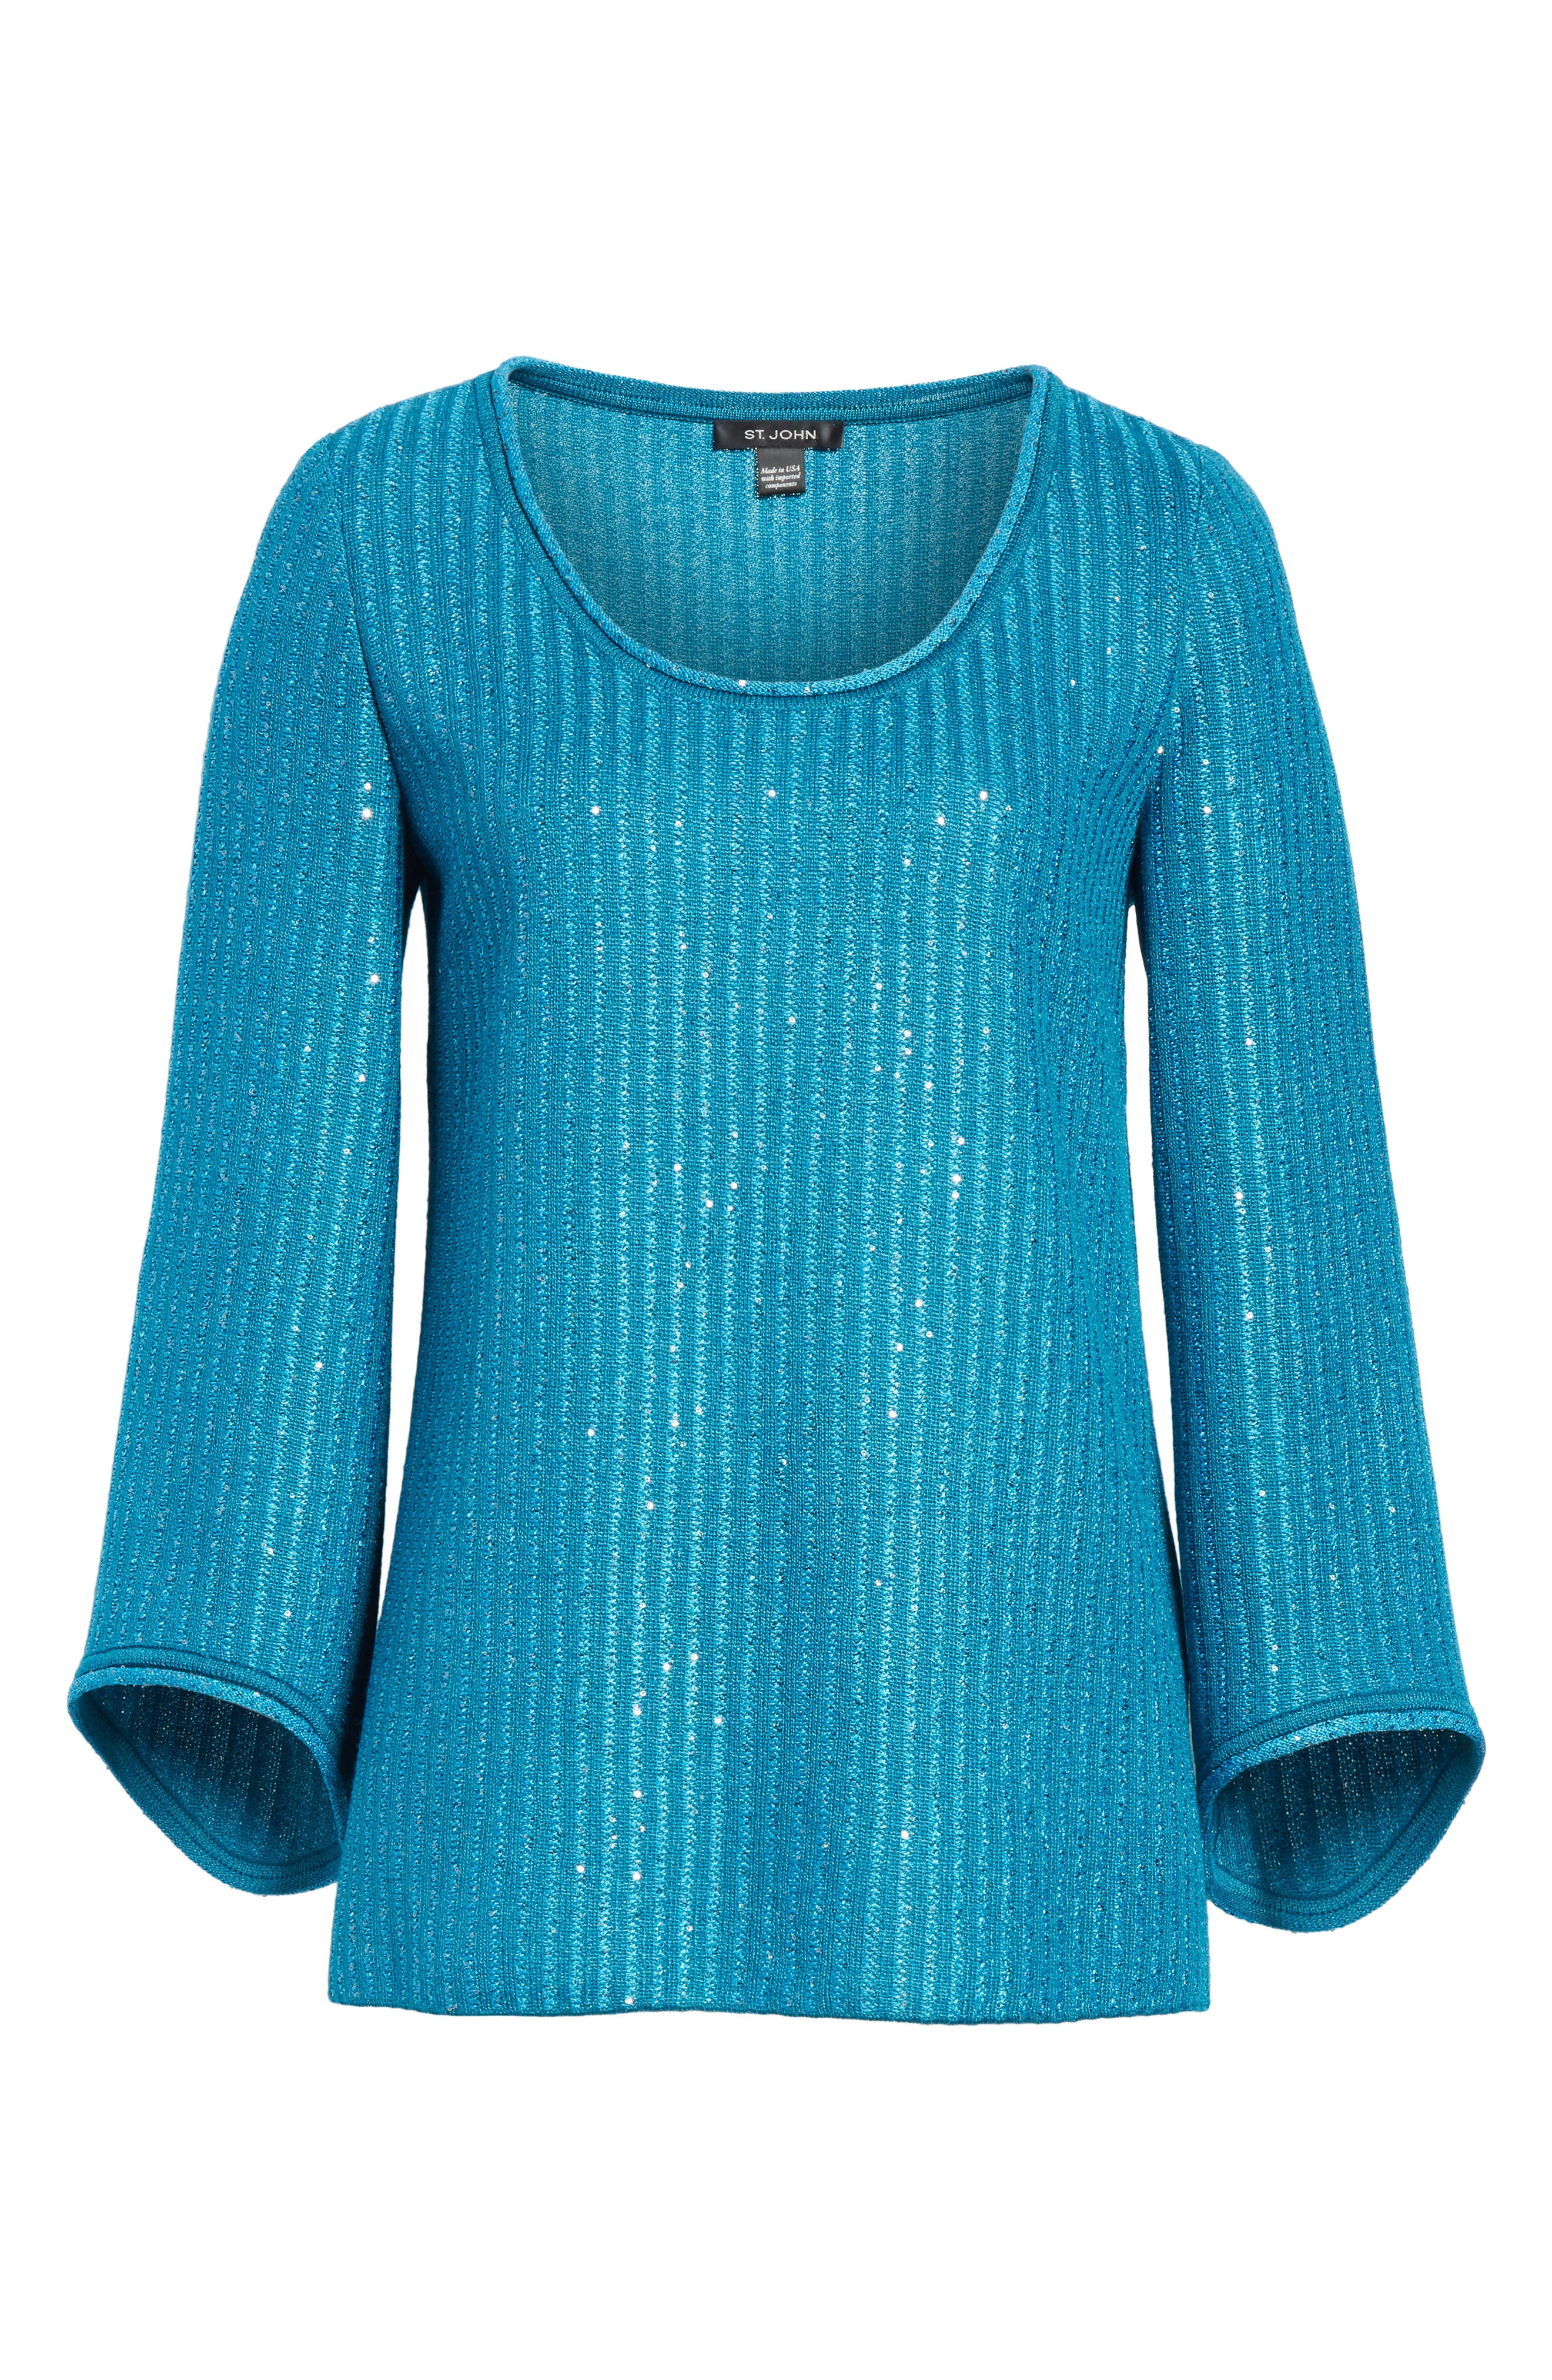 Sequin Rib Knit Sweater,                             Alternate thumbnail 7, color,                             CERULEAN